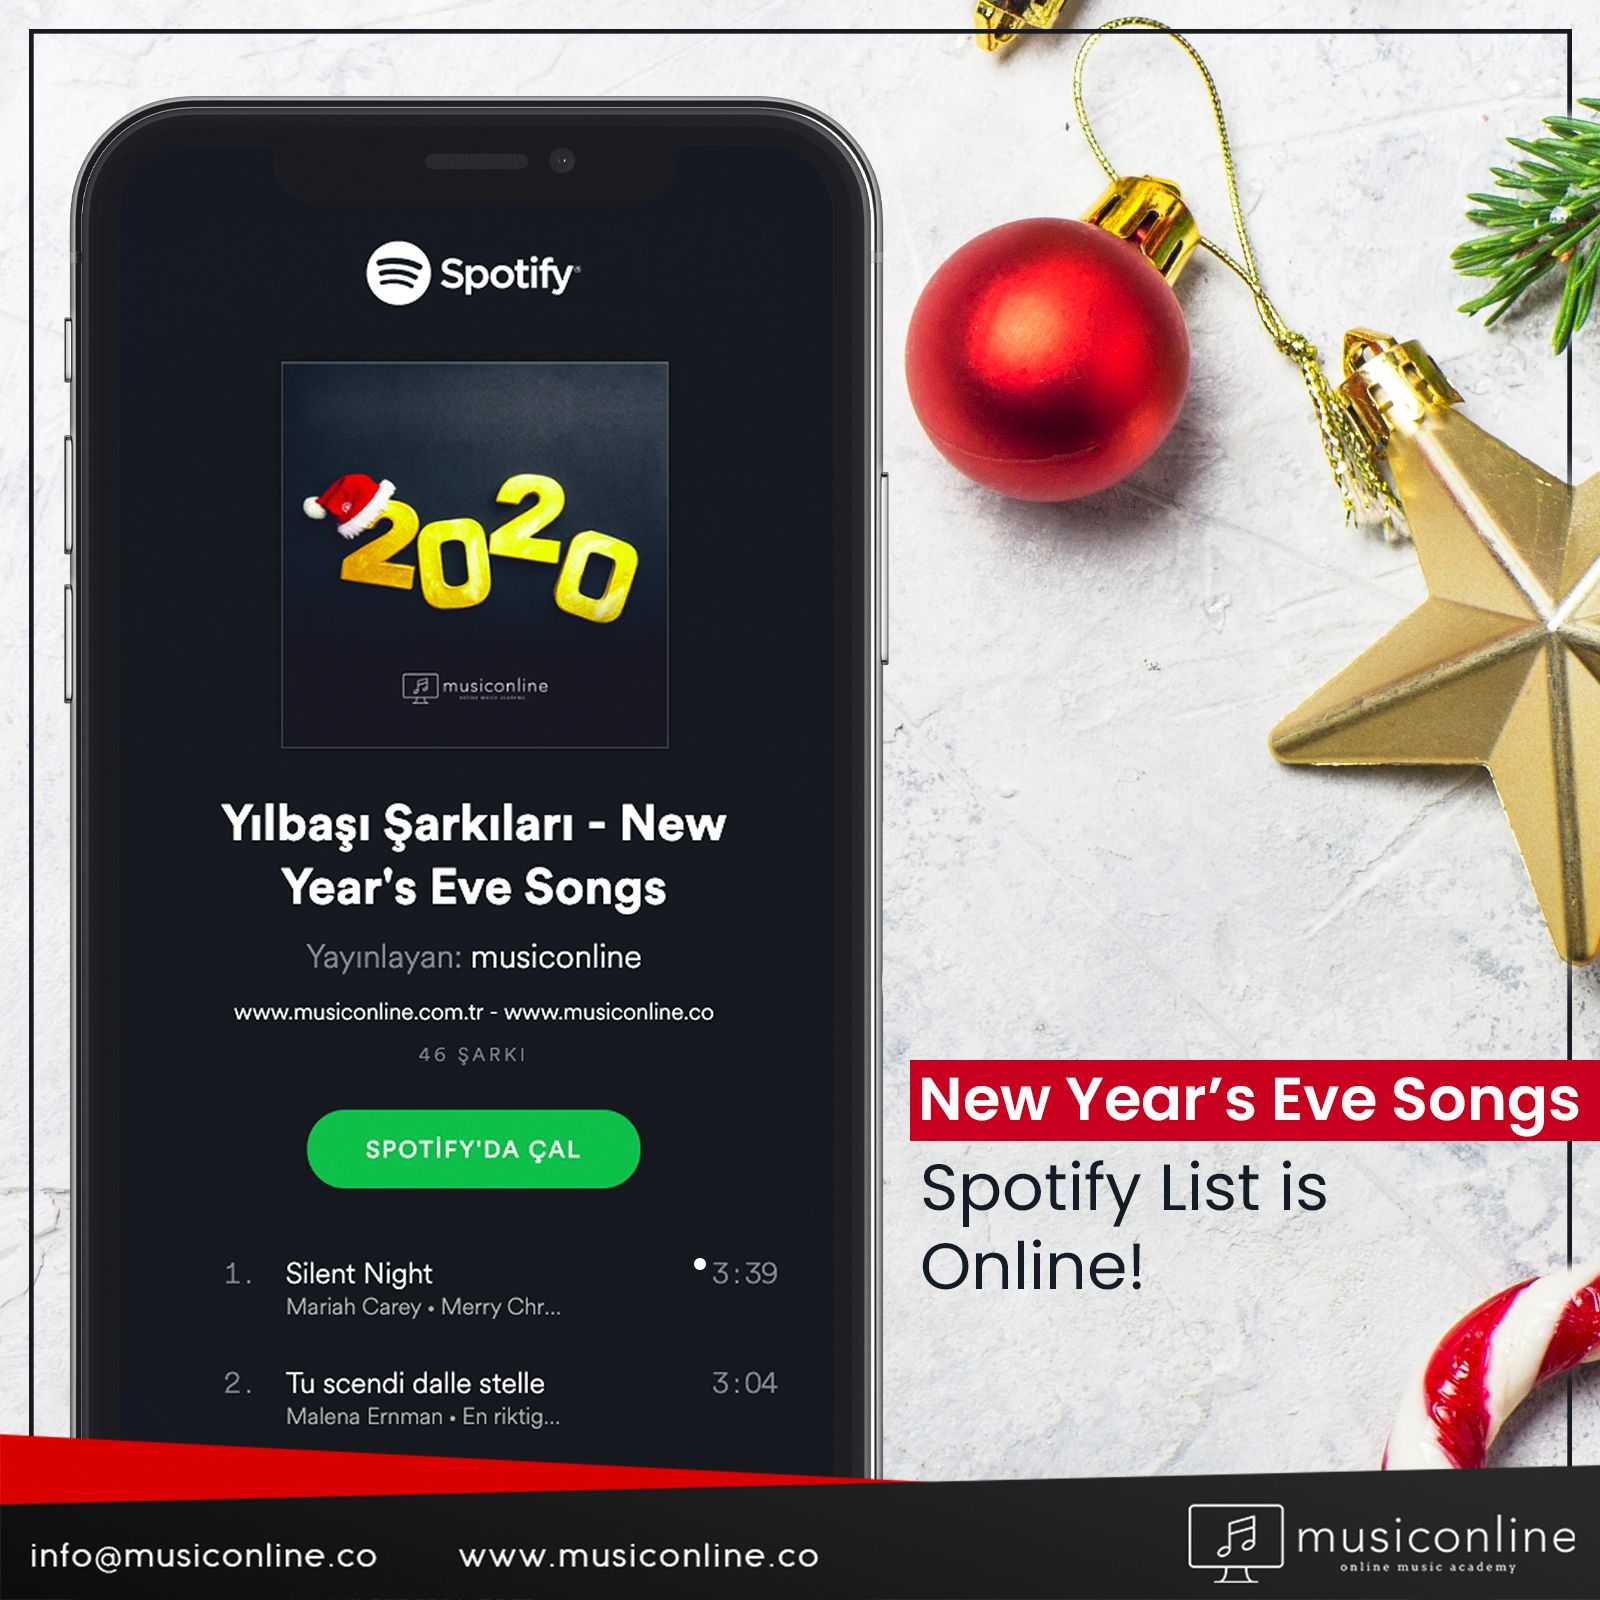 Our spotify list of 'Songs for New Year's Eve', which you